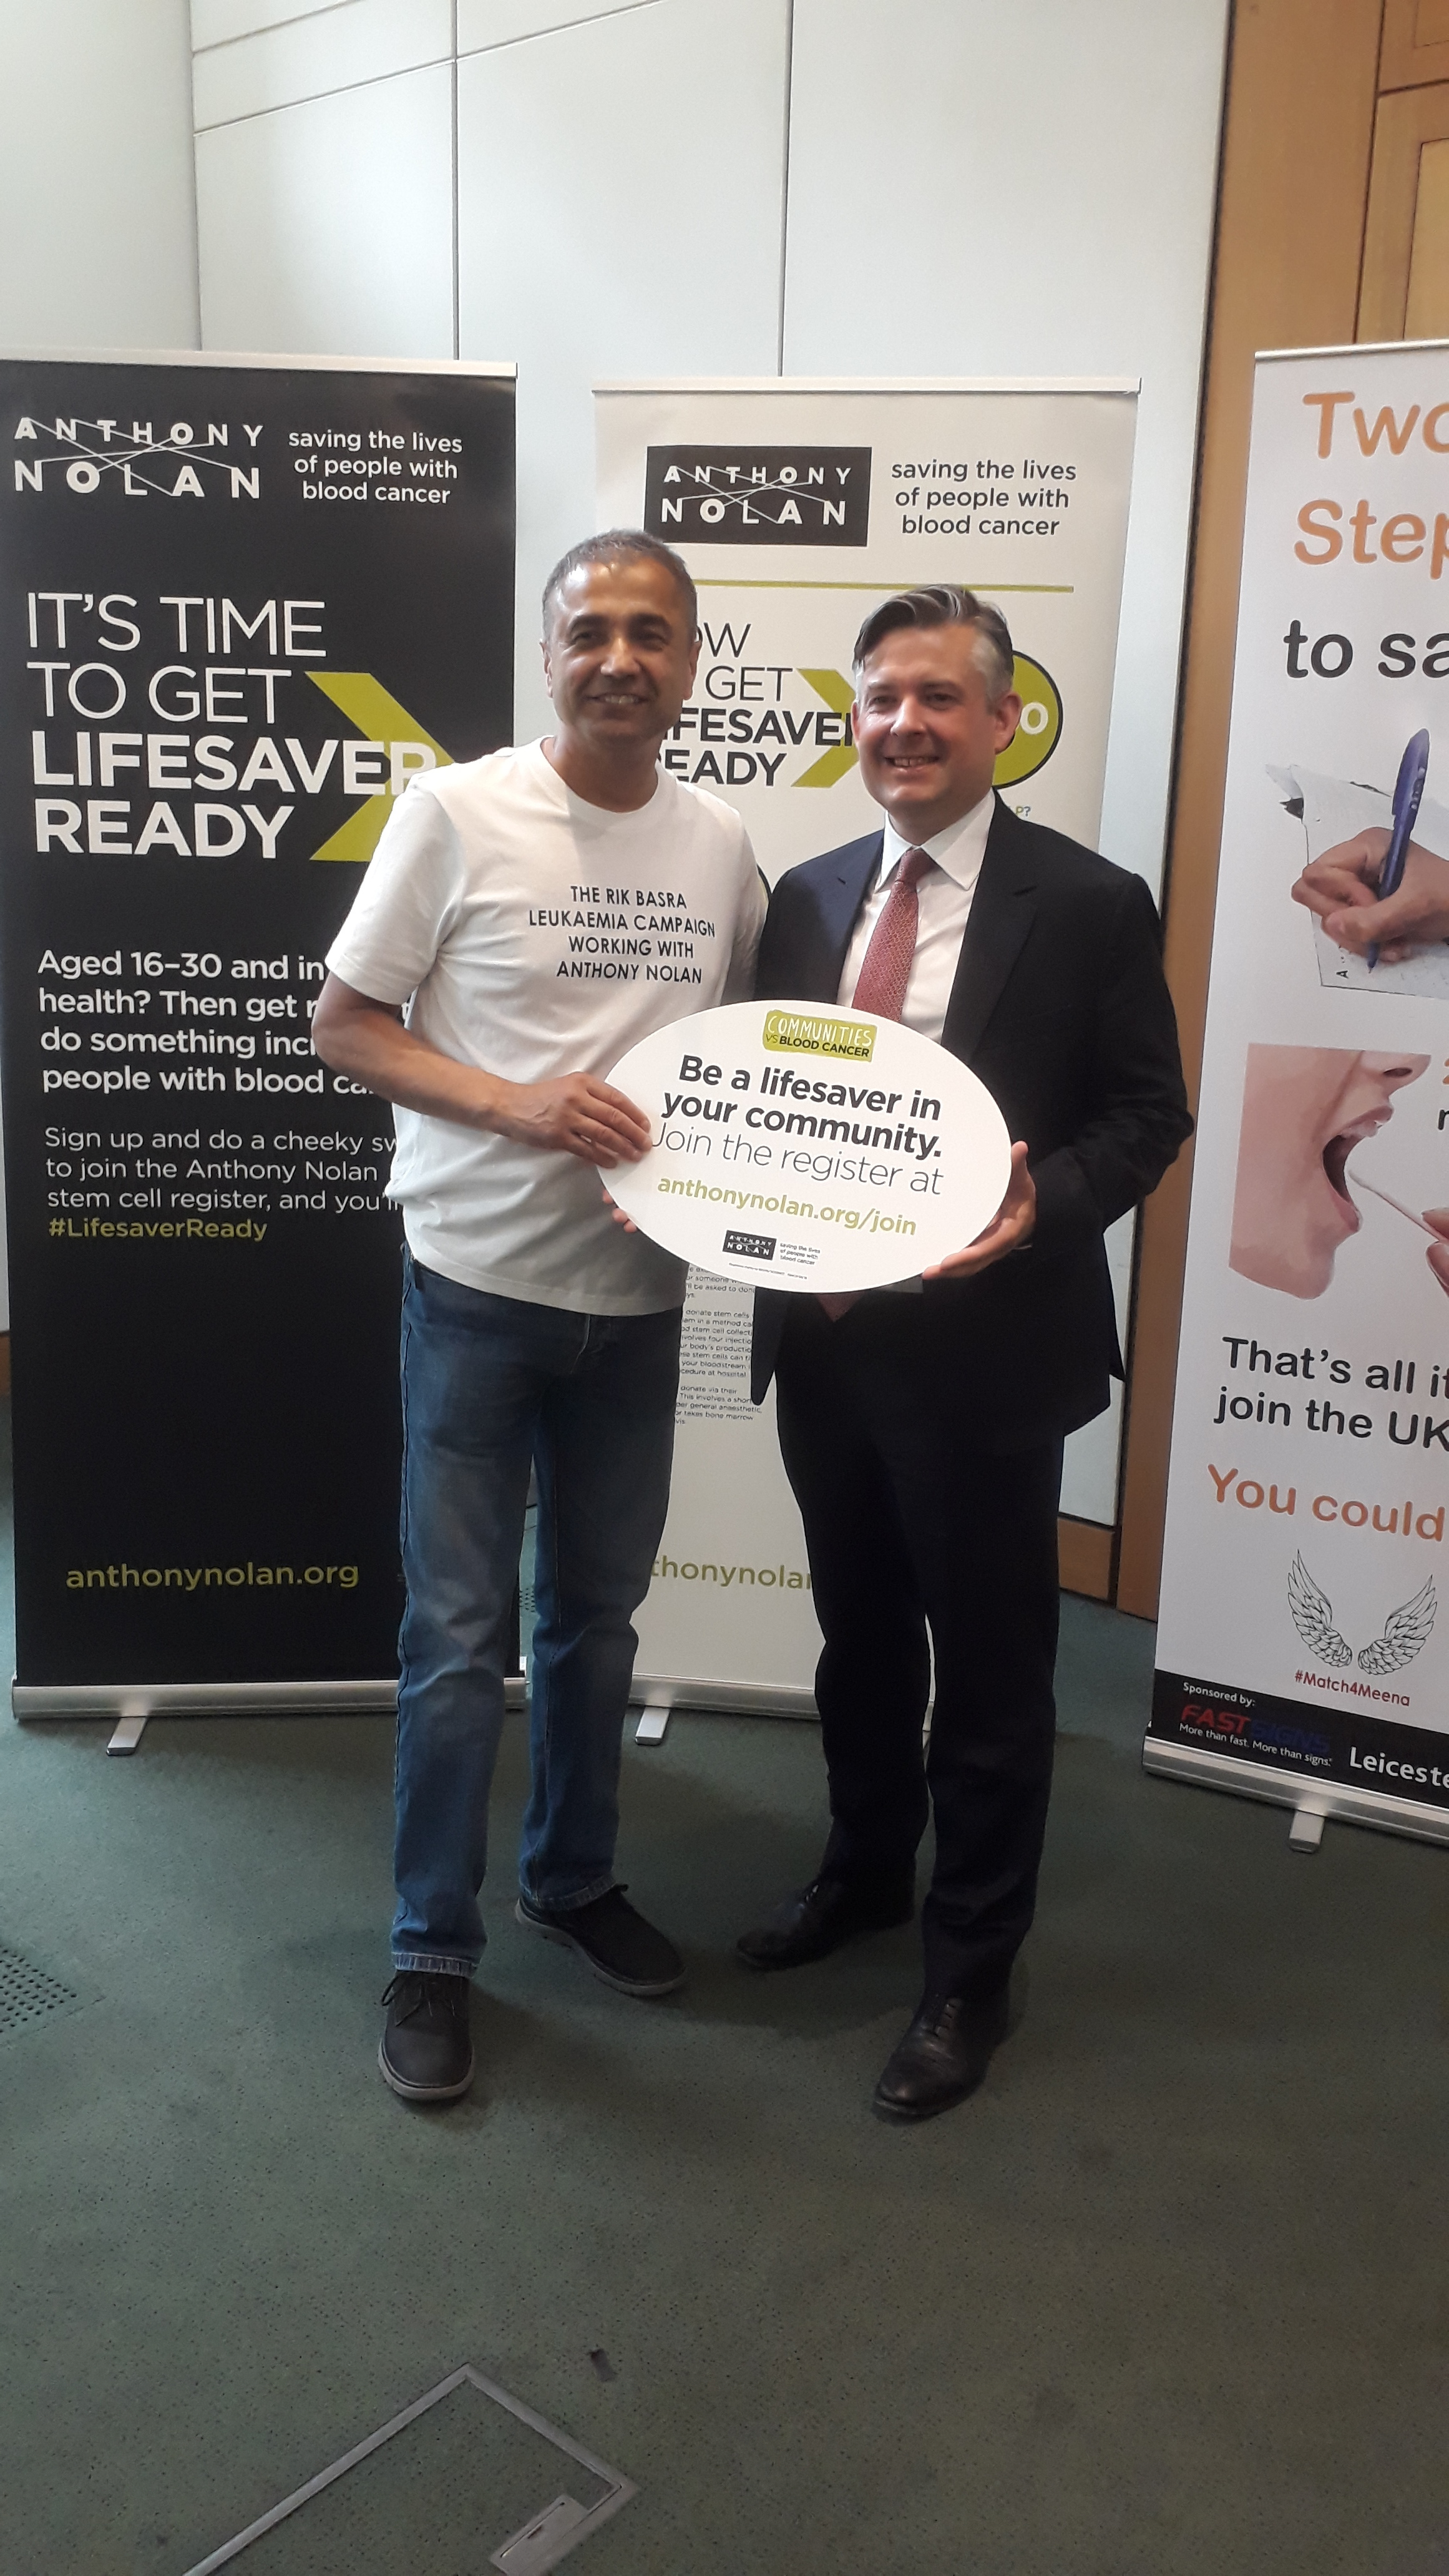 Jon supporting the Rik Basra Leukaemia Campaign and #Match4Meenaat at a cross-party Parliamentary event - Wednesday July 17 2019